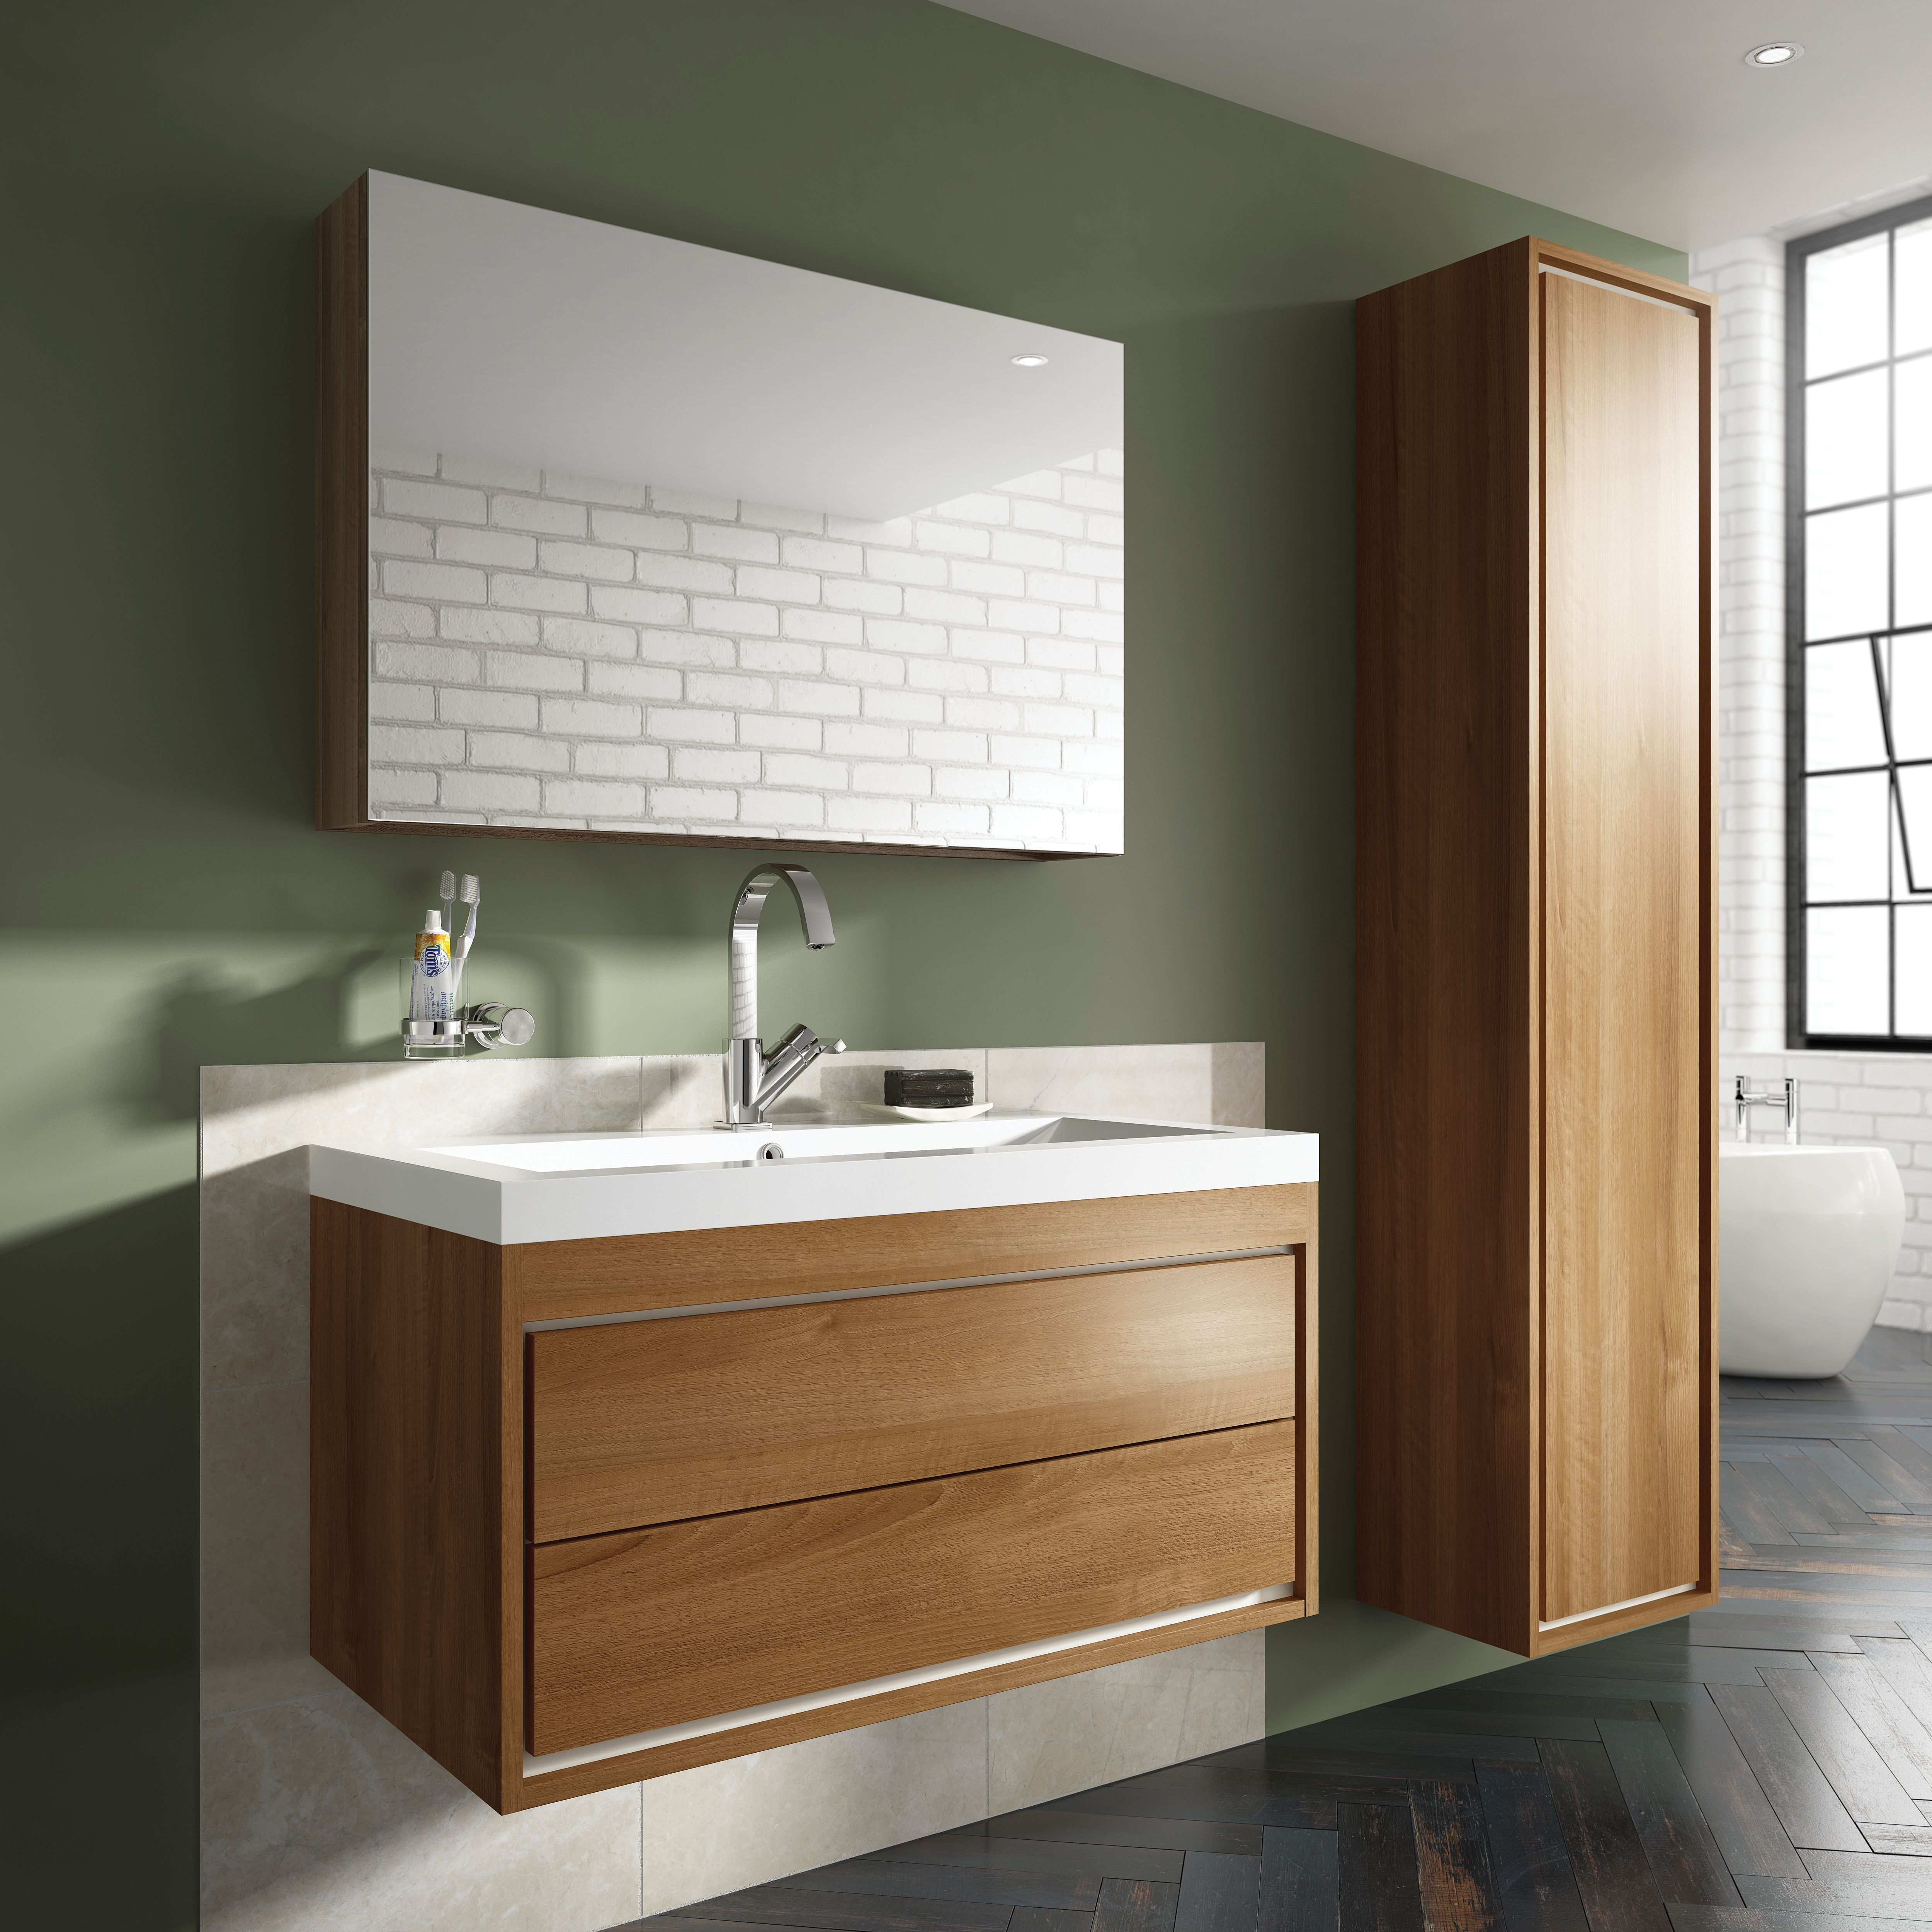 Wickes Novellara Walnut Wall Hung Vanity Unit 600 Mm Wickescouk